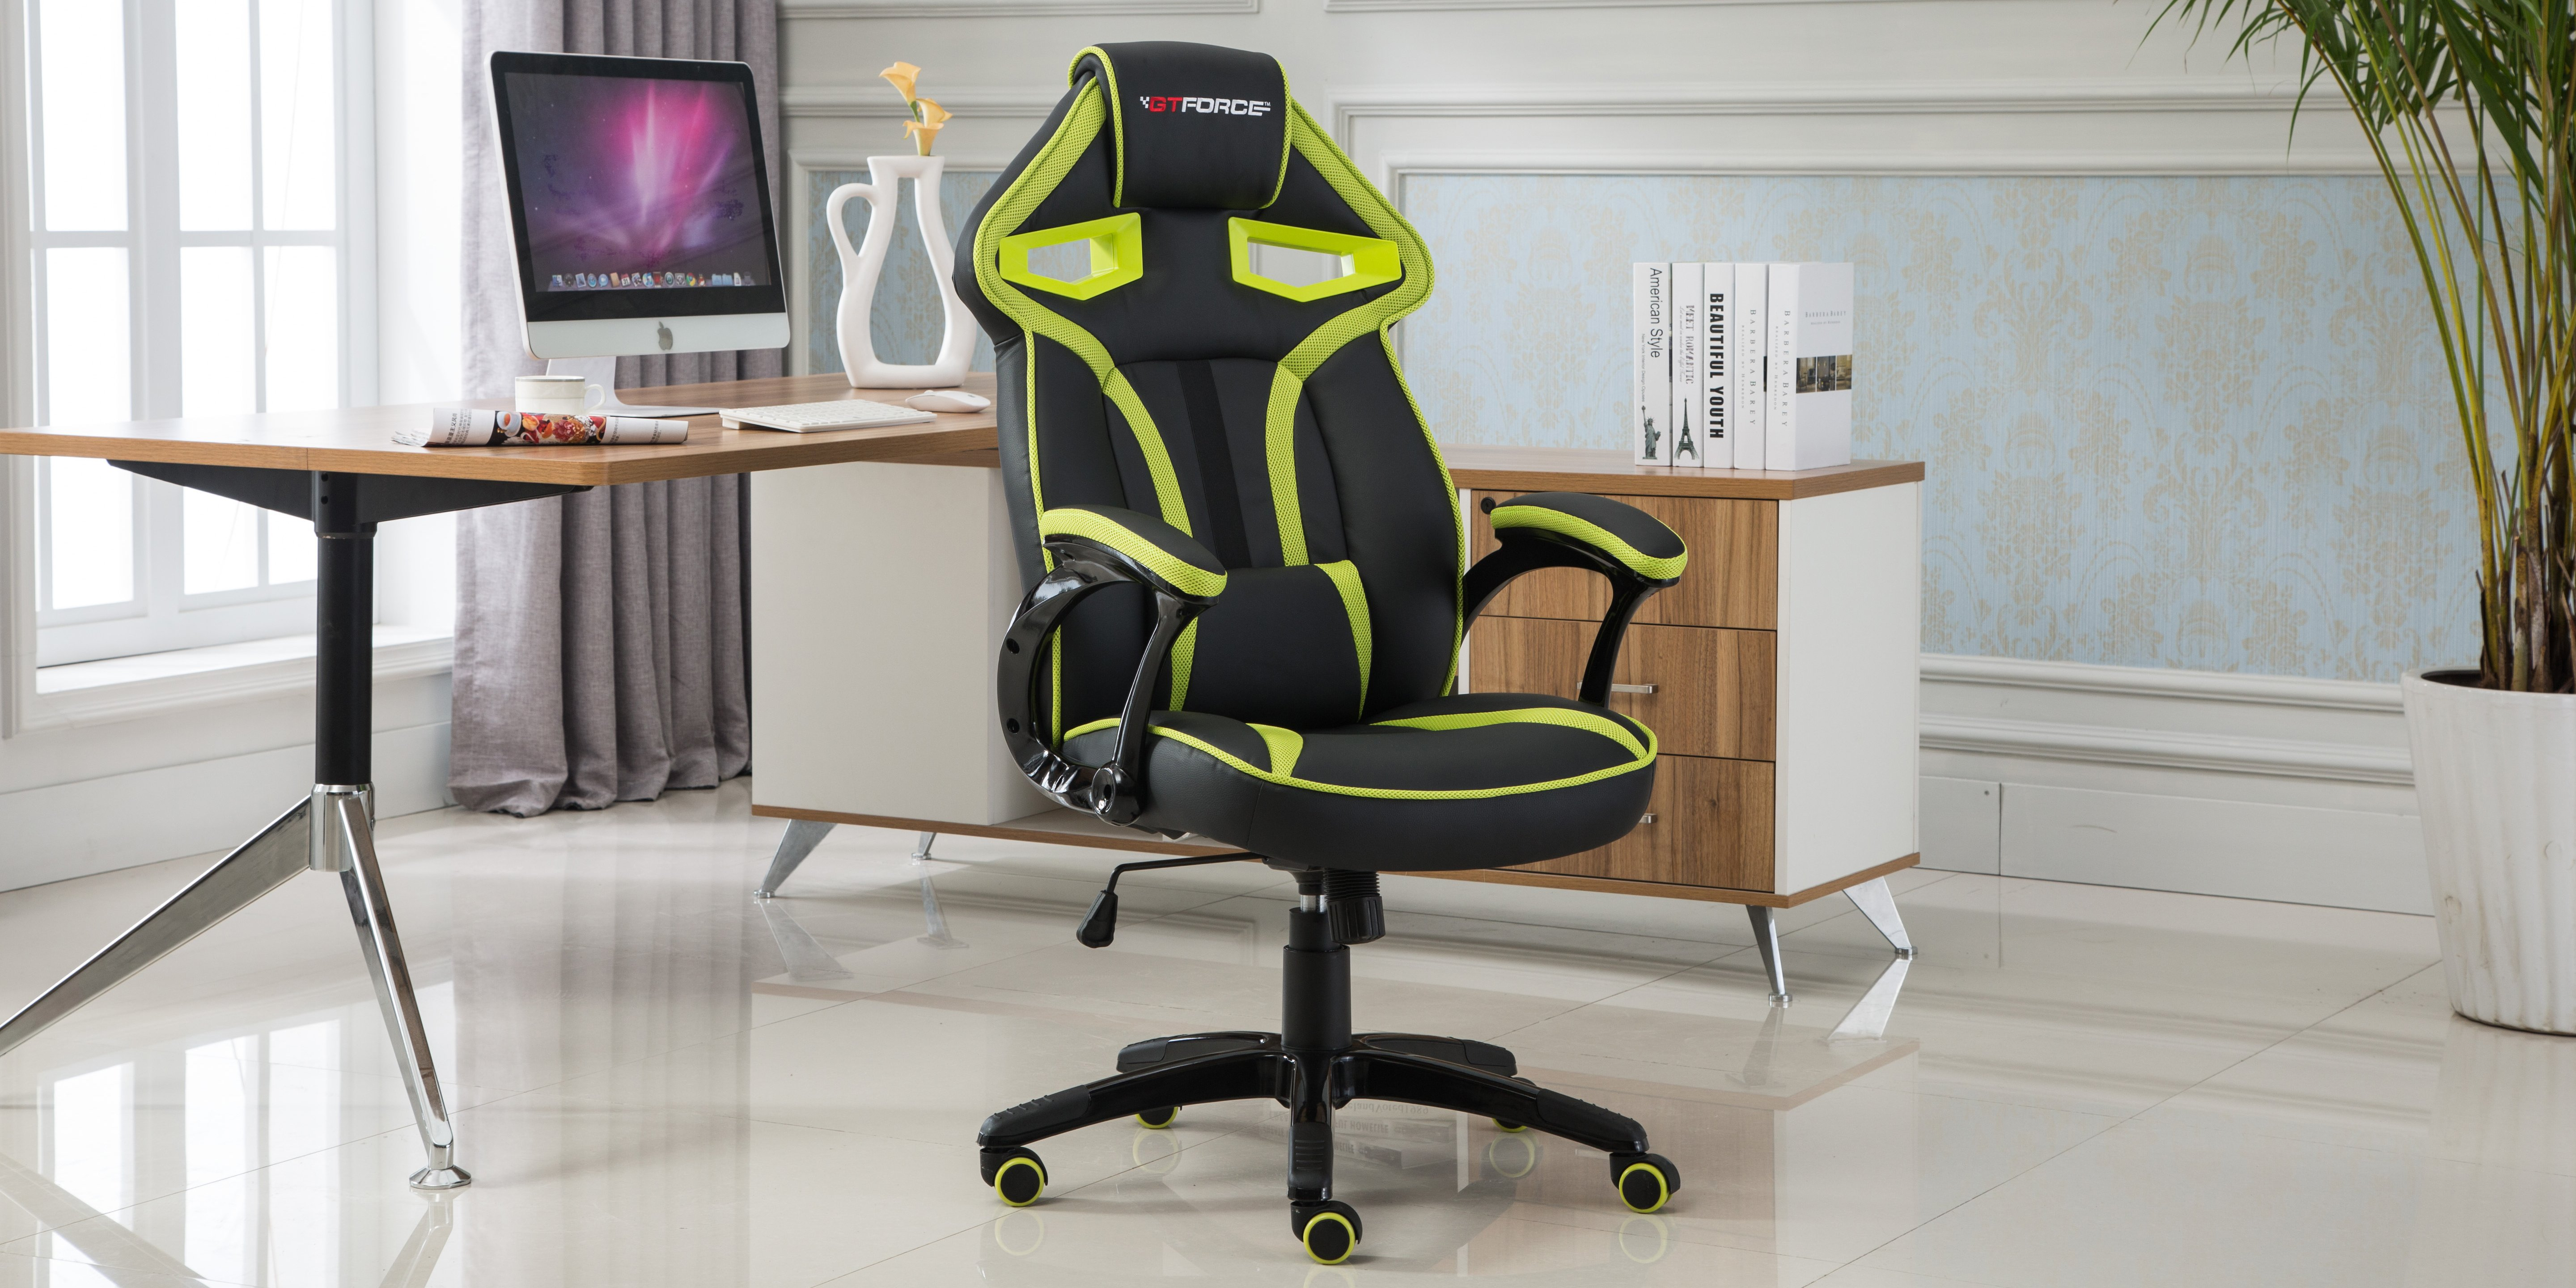 Awesome Gtforce Roadster 1 Gaming Chair With Adjustable Lumbar Support In Black Green Forskolin Free Trial Chair Design Images Forskolin Free Trialorg